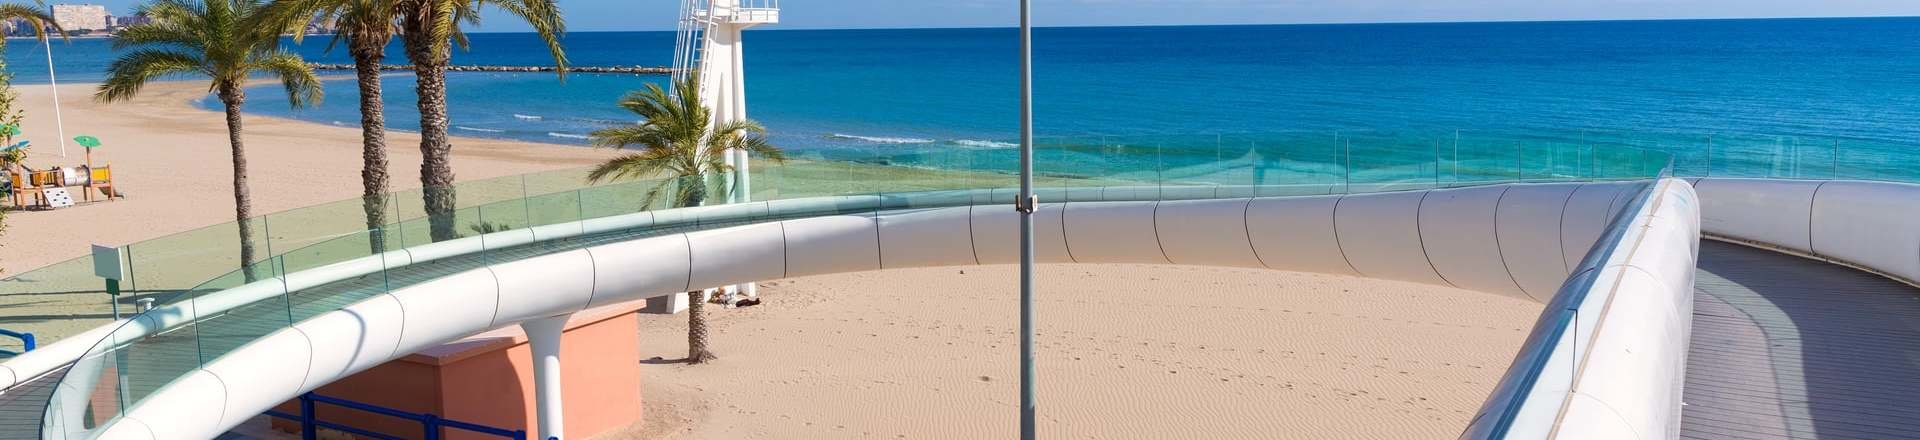 Cheap hotels in alicante from 16 - Hotels in alicante with swimming pool ...